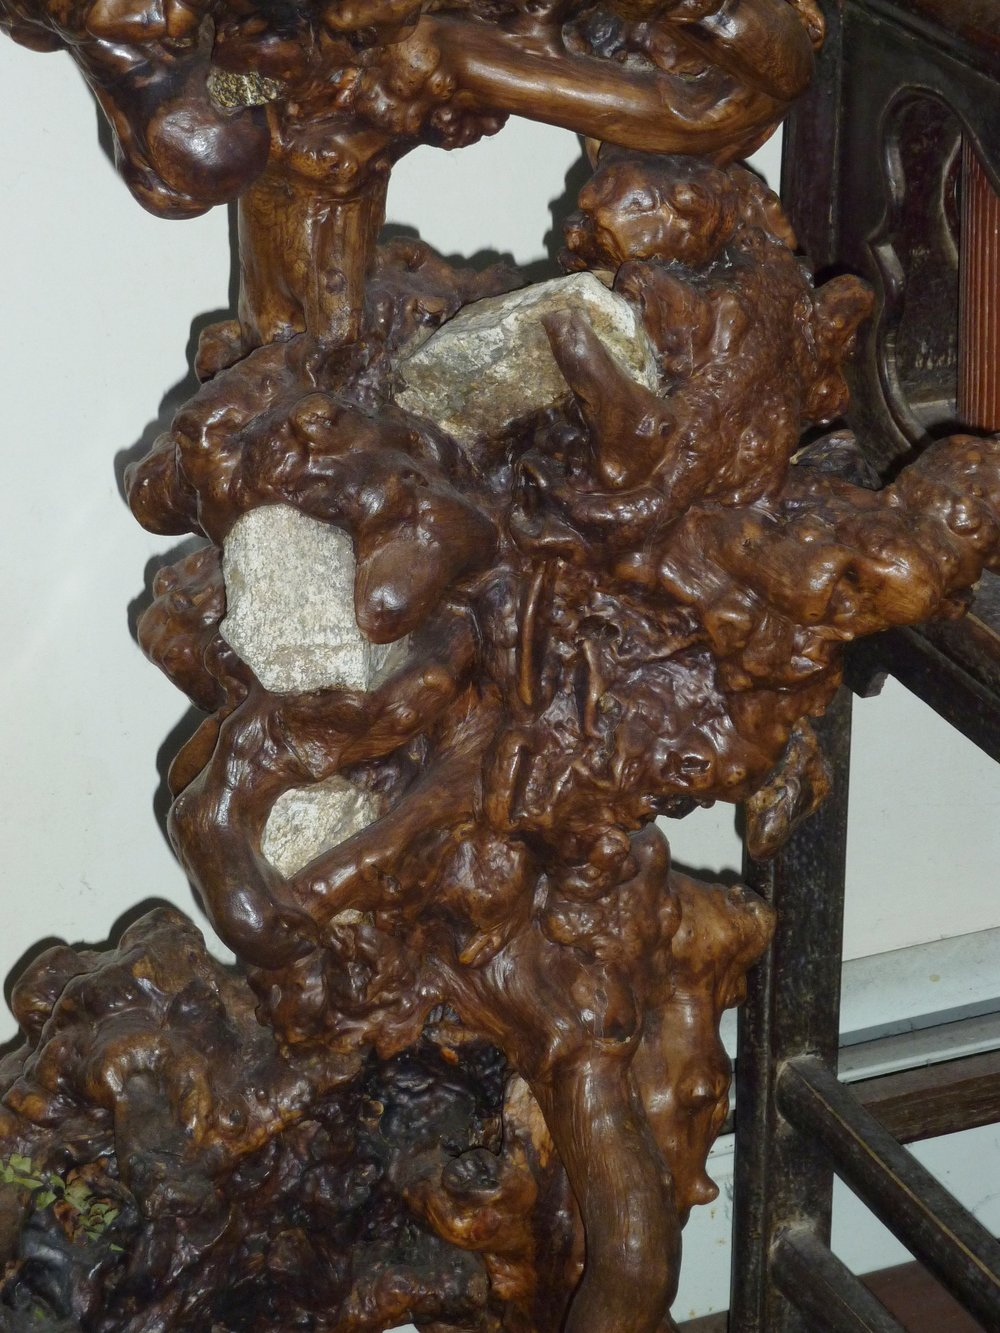 Wood burl root plant stand, China, mid 20th century, detail.